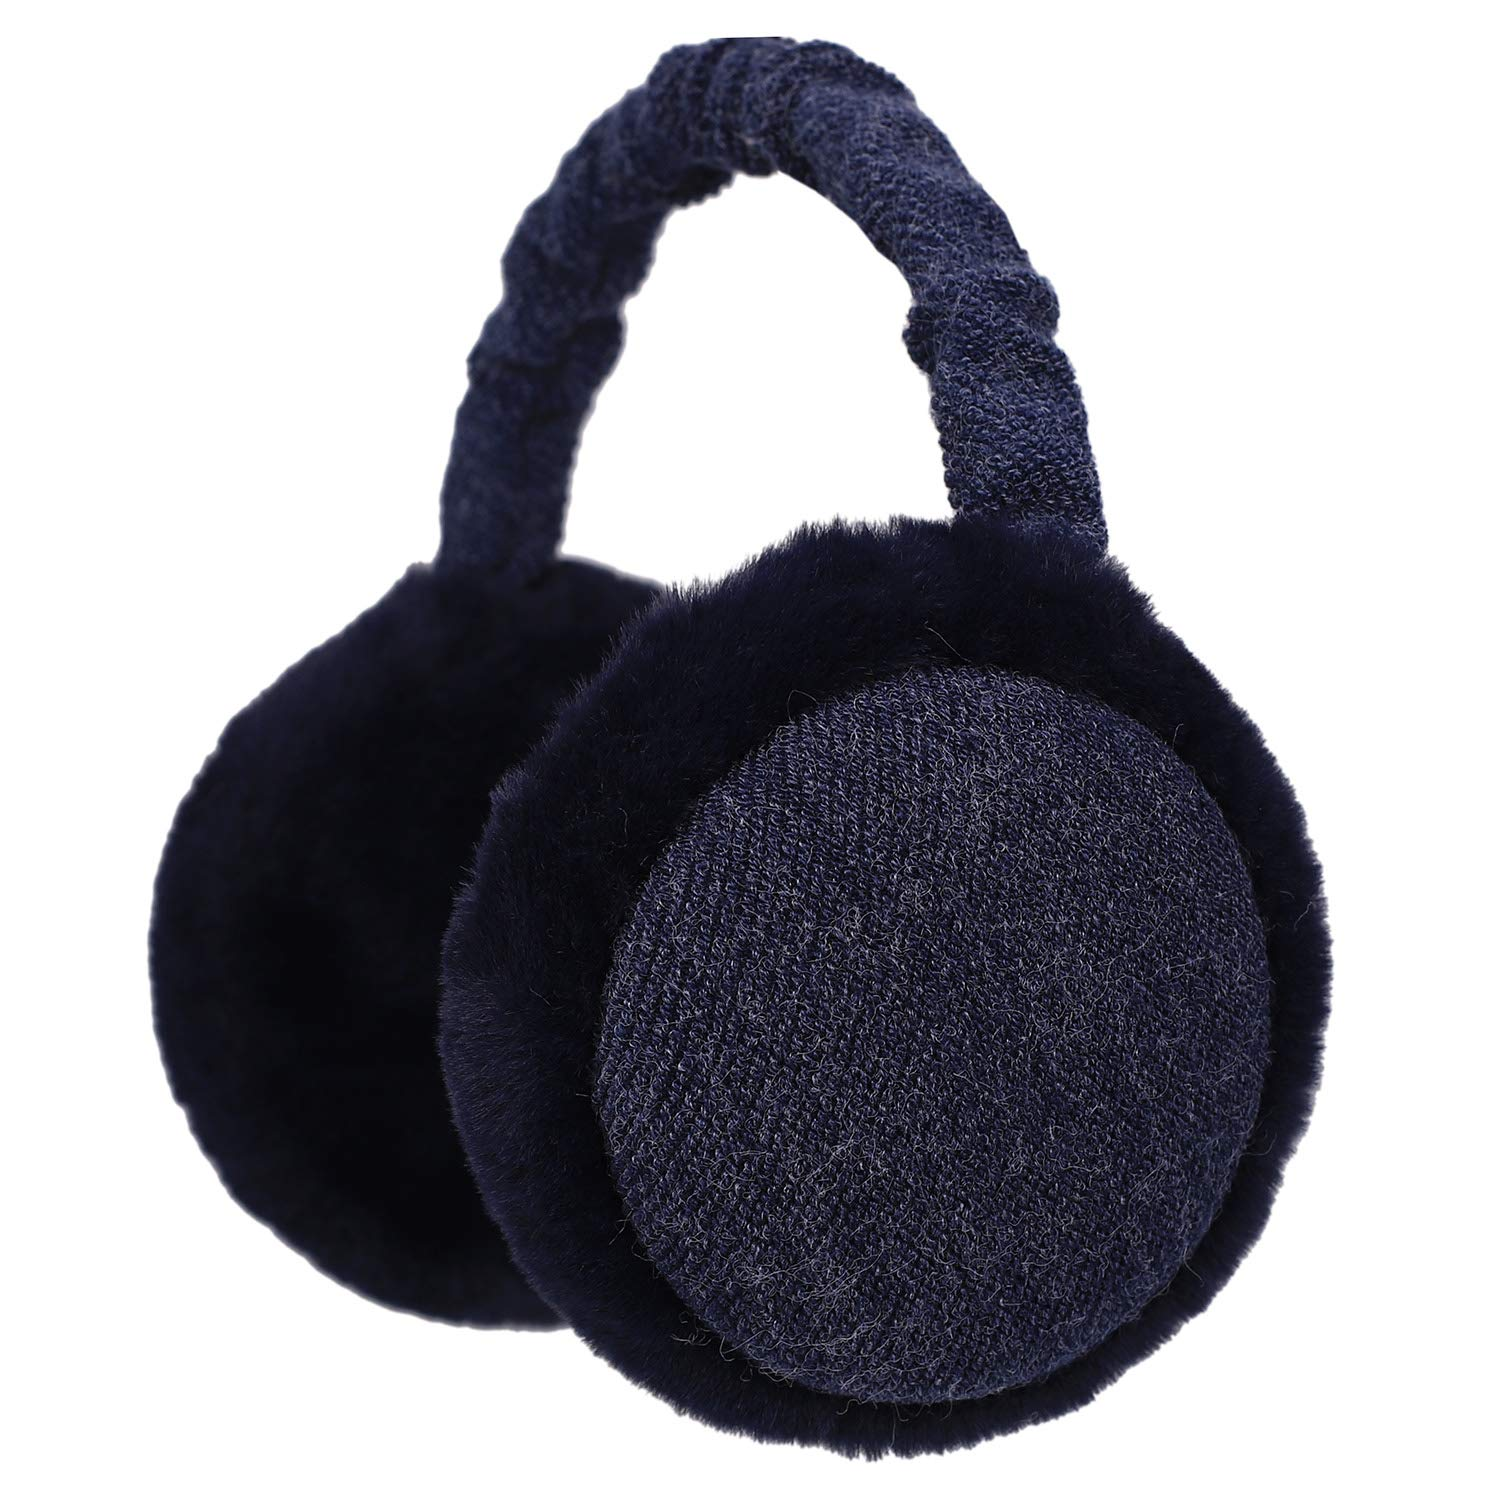 Zeltauto Unisex Folding Ear Warmer Soft Plush Thermal Earmuff